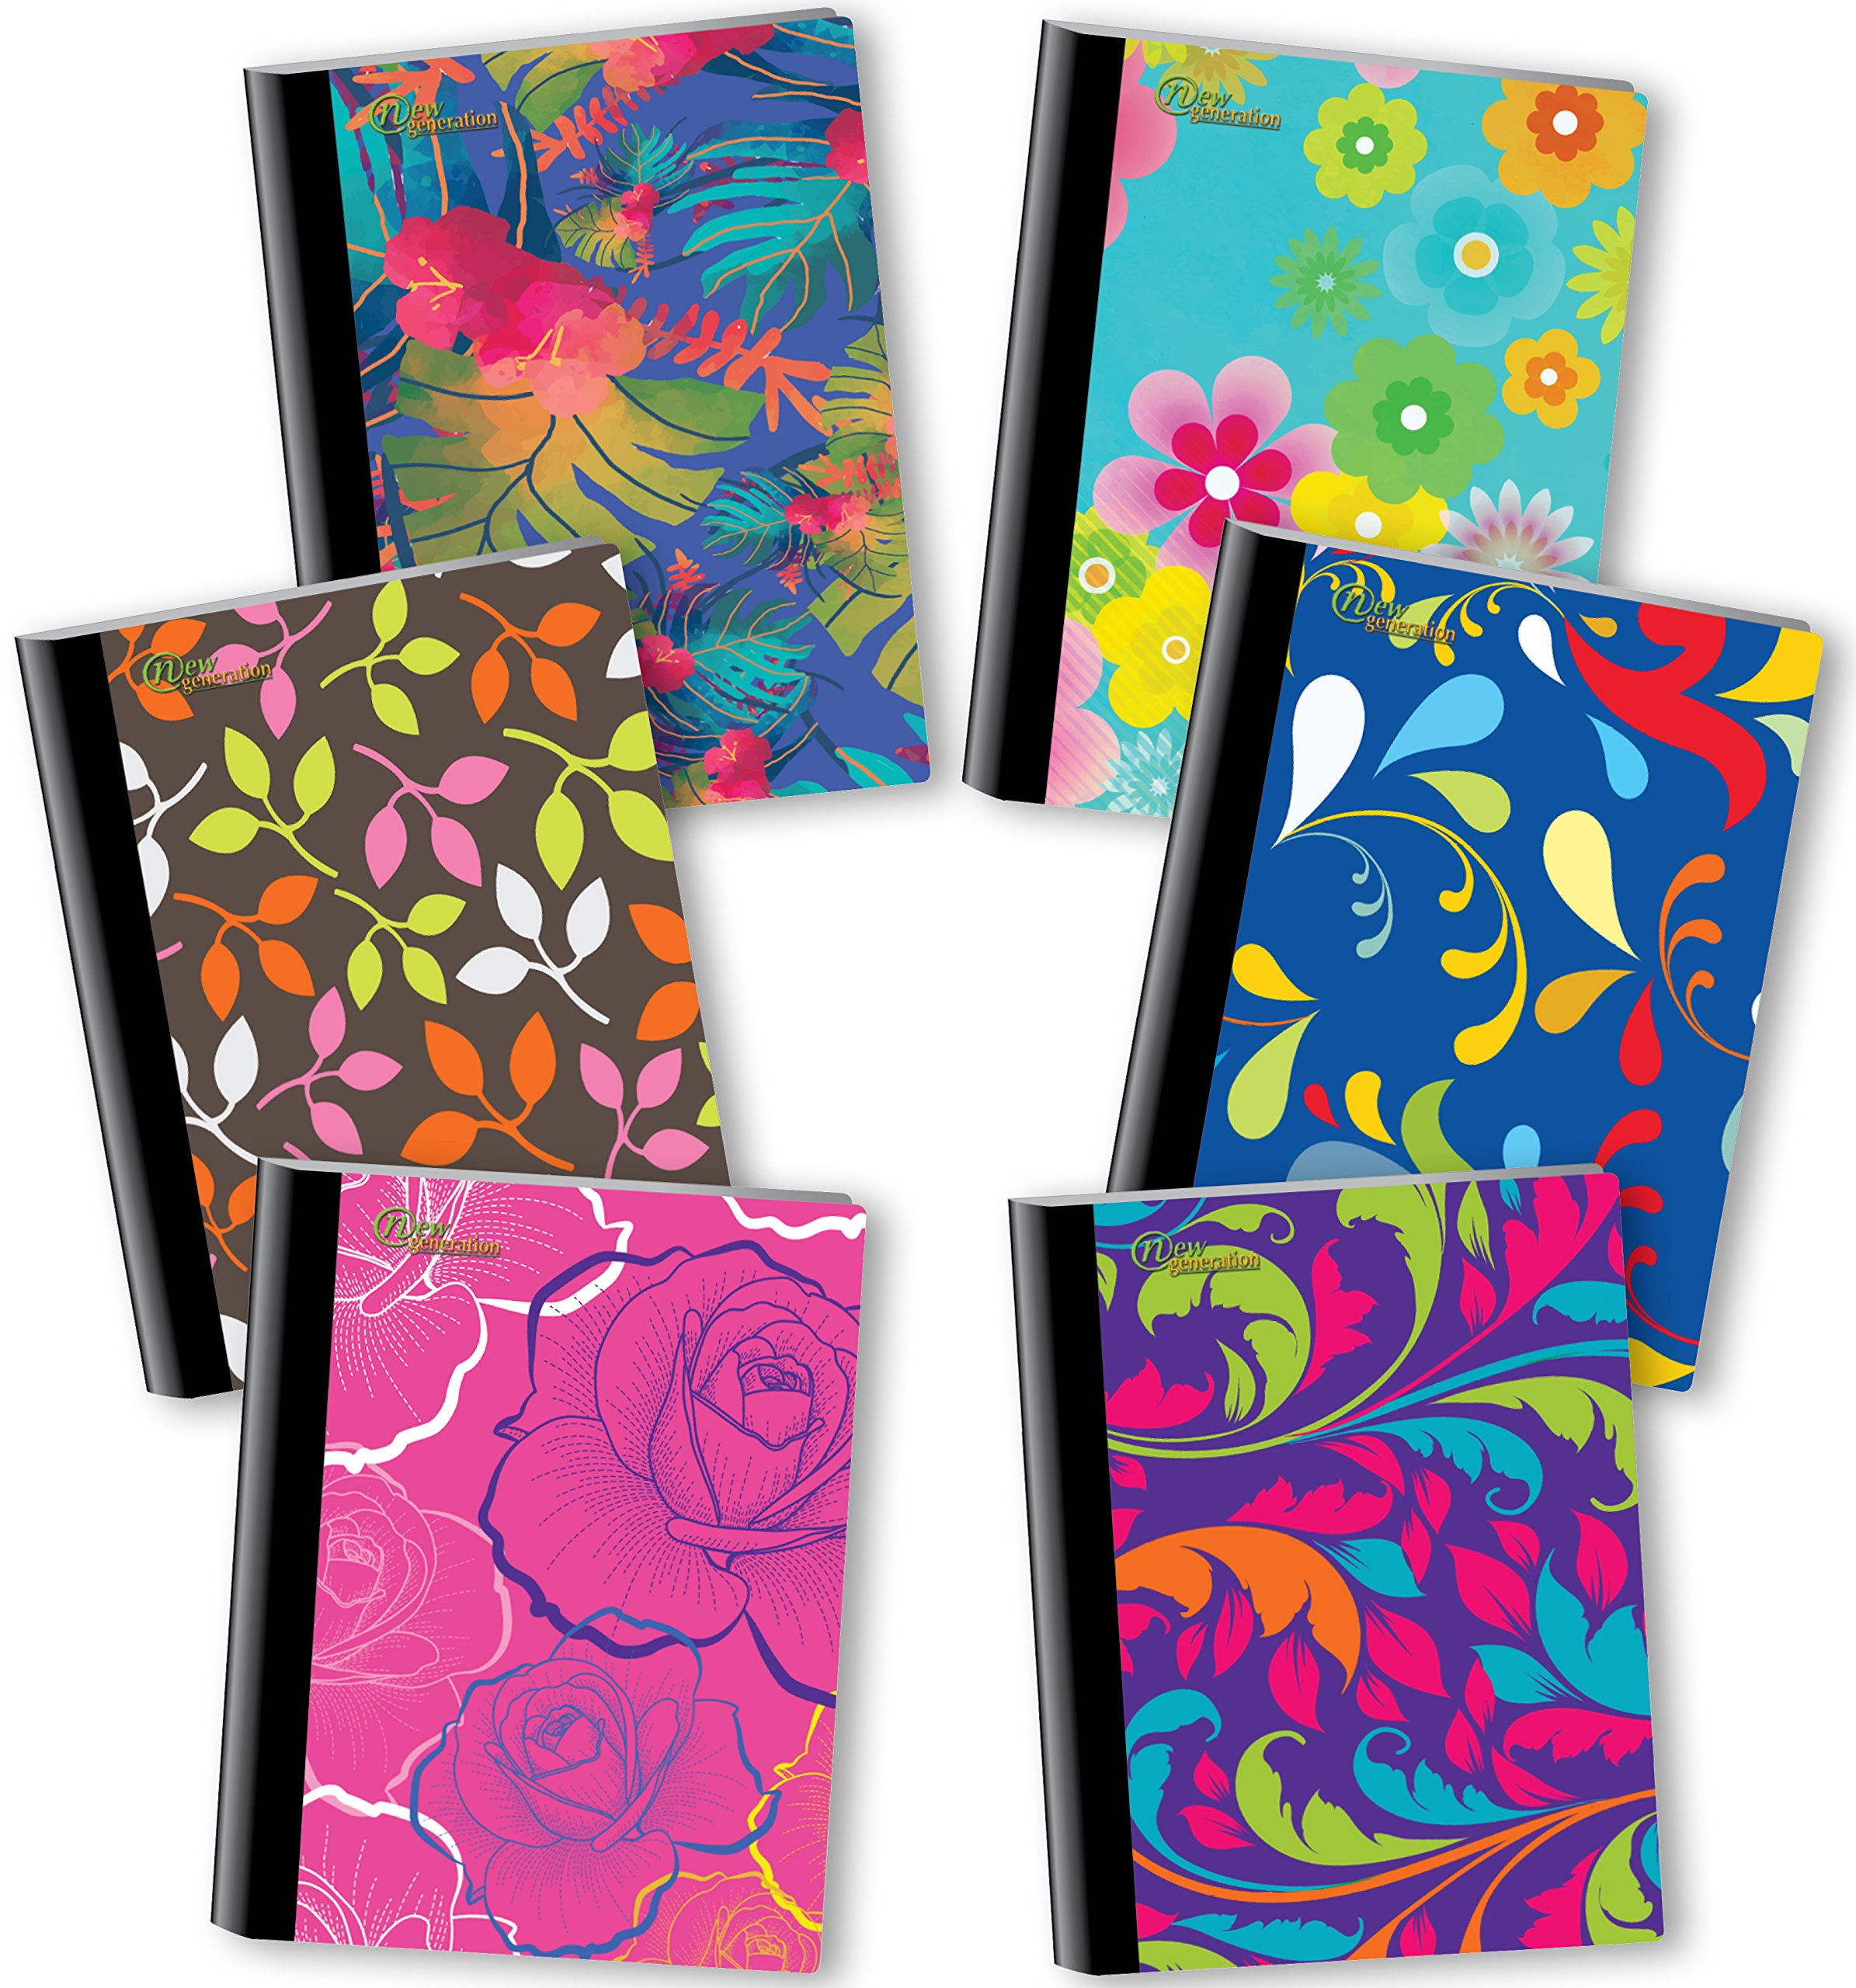 New Generation - Floral - Composition Book, 6 Pack, 80 Sheets / 160 Pages, 7.5 x 9.75 inches, Heavy Duty Laminated Hard Covers (6 Pack Composition NOTEBOOKS Wide Ruled)